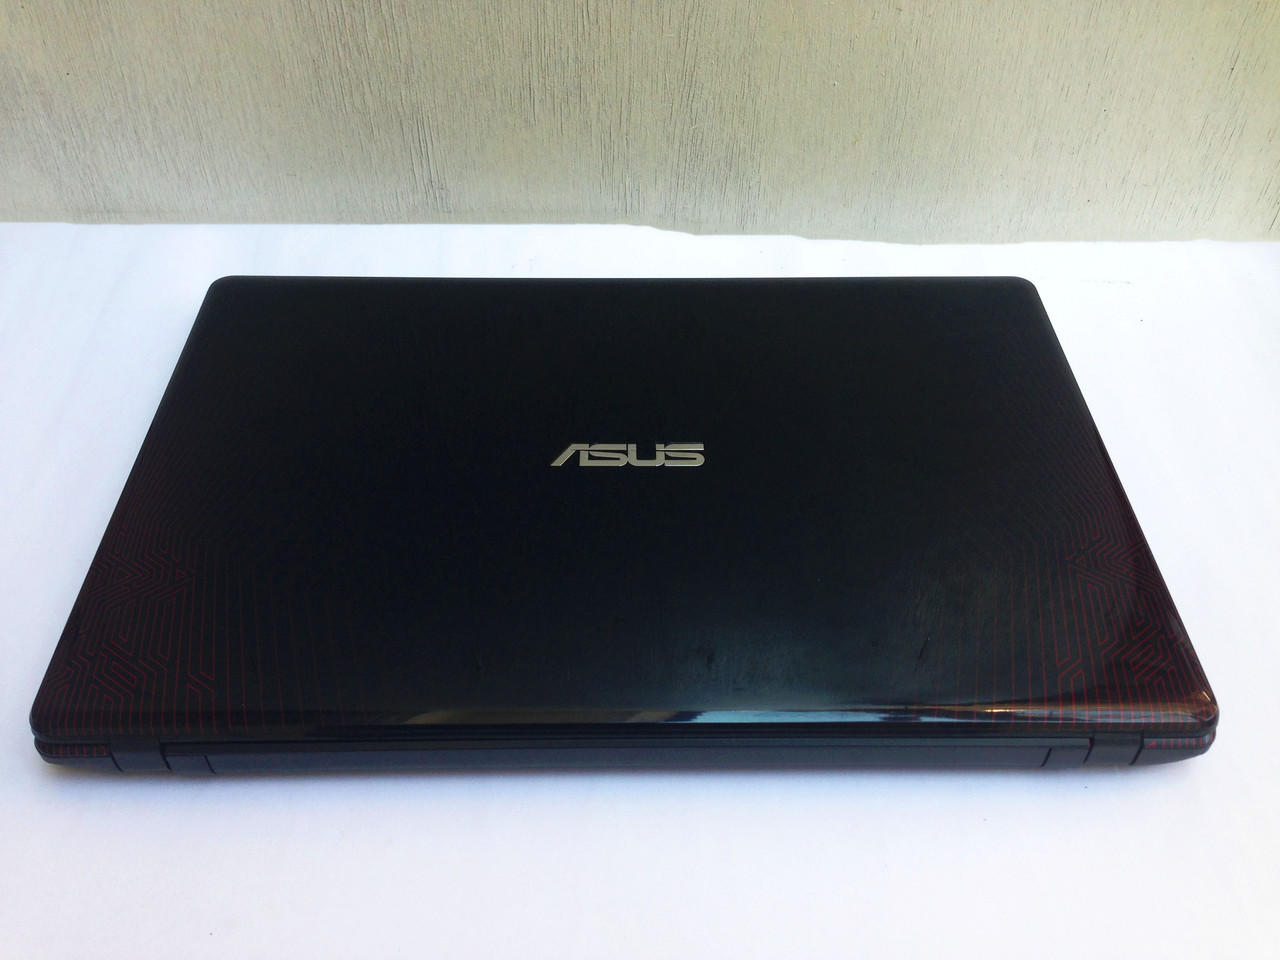 [Notebook] Review Asus X550JX - i7 4720HQ, GTX 950M